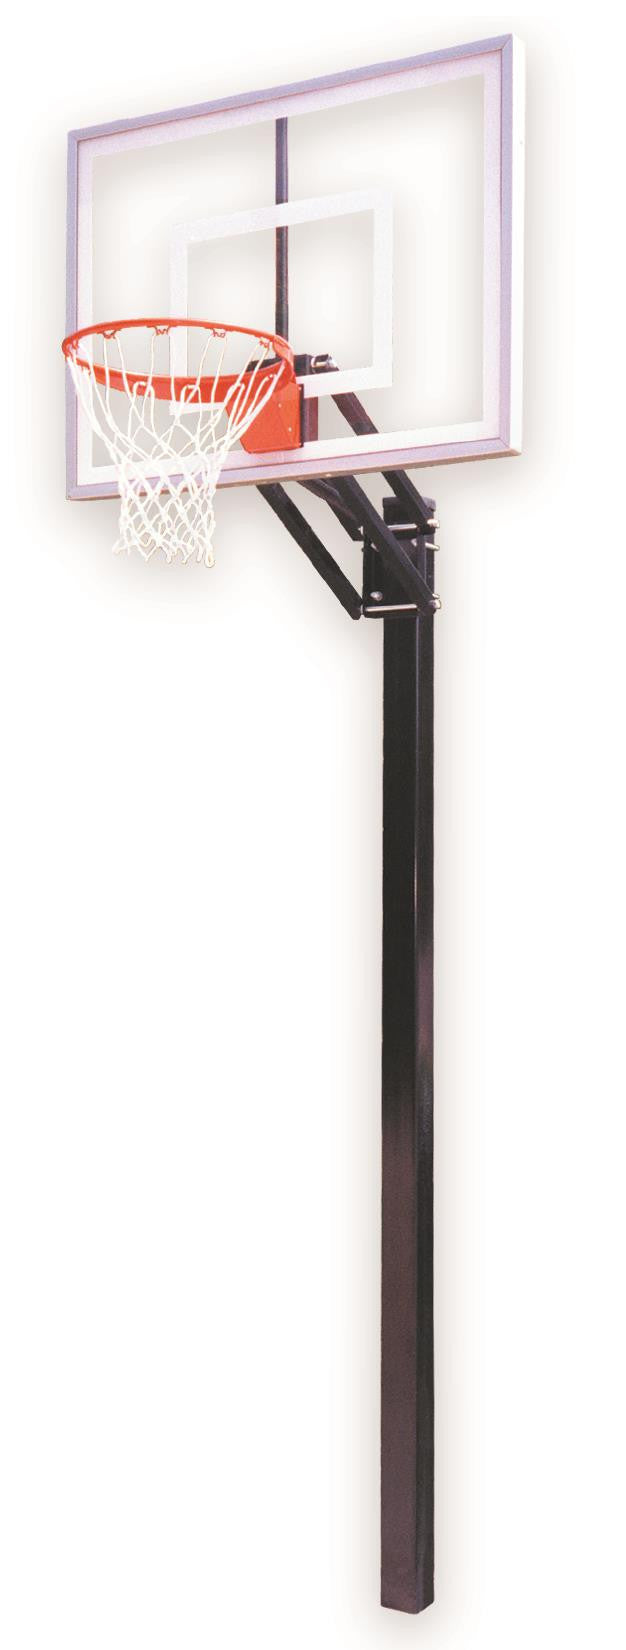 First Team Champ II In Ground Outdoor Adjustable Basketball Hoop 48 inch Acrylic